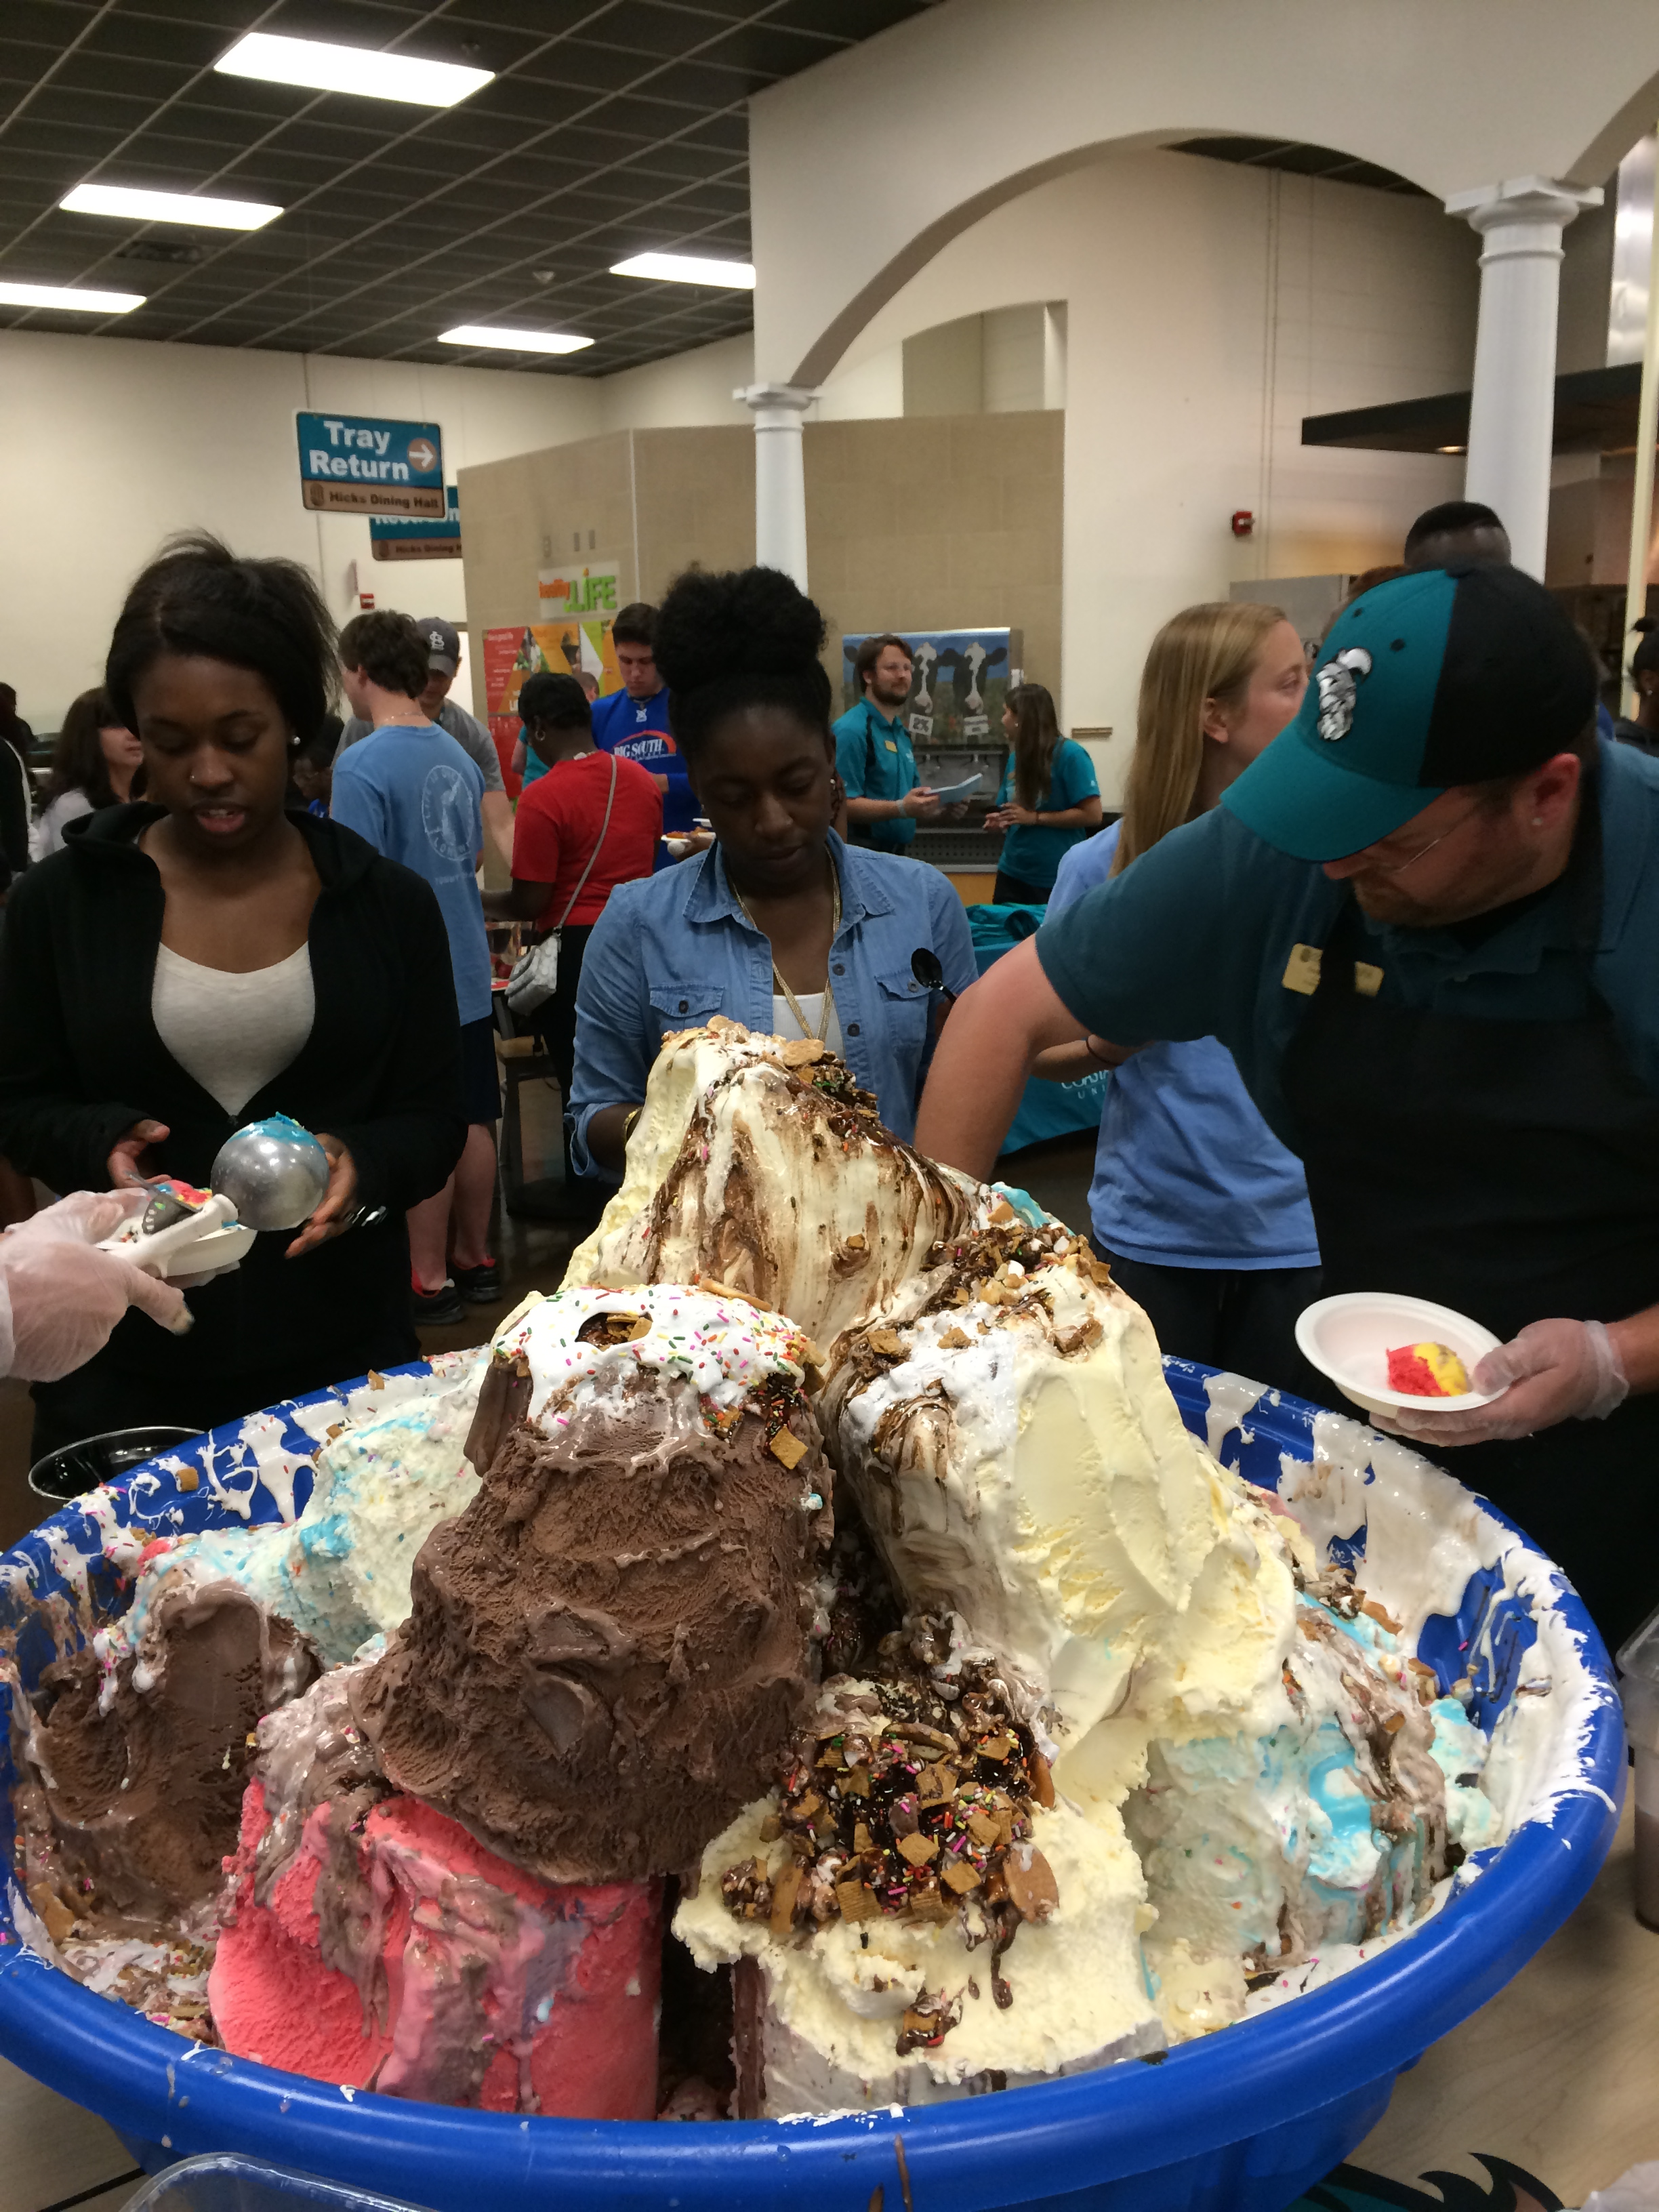 This wasn't even the ice cream mountain at full size. In fact, this was what it looked like over an hour into the event.